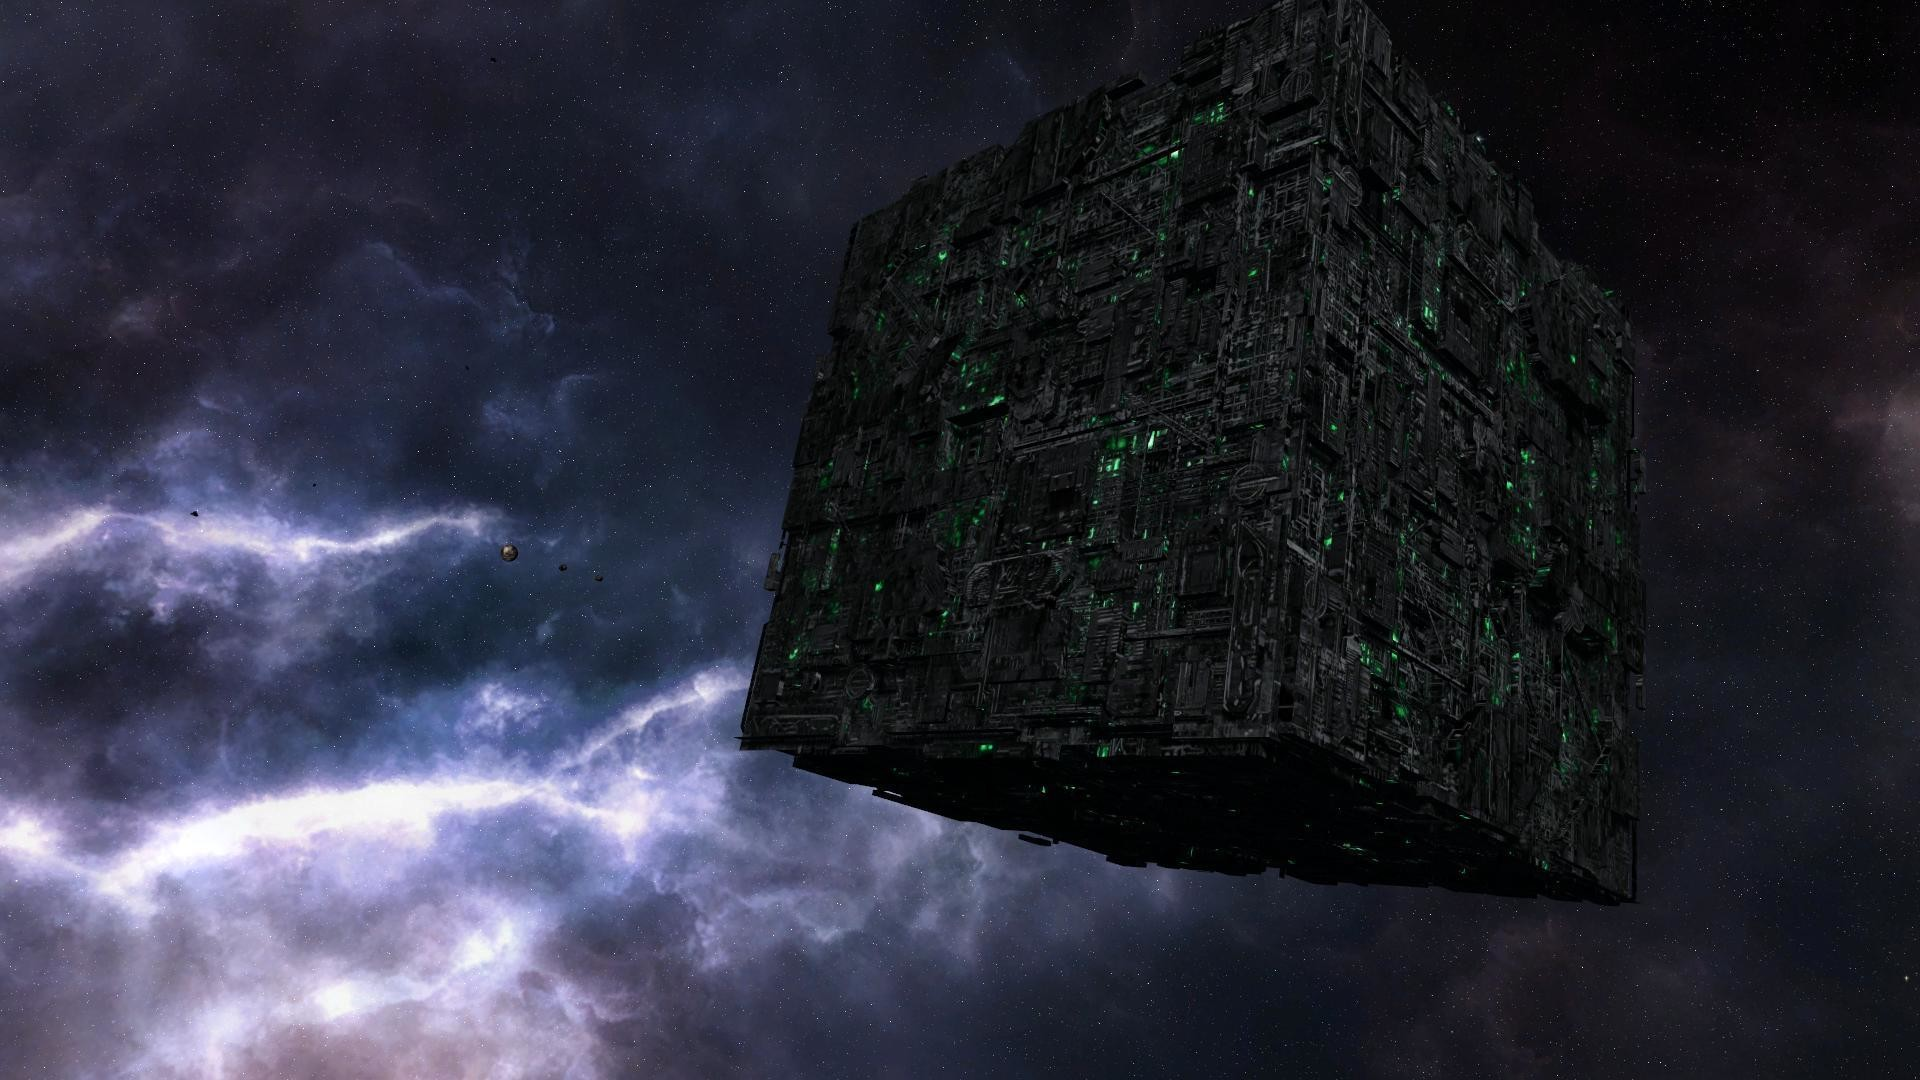 view image. Found on: borg-wallpaper